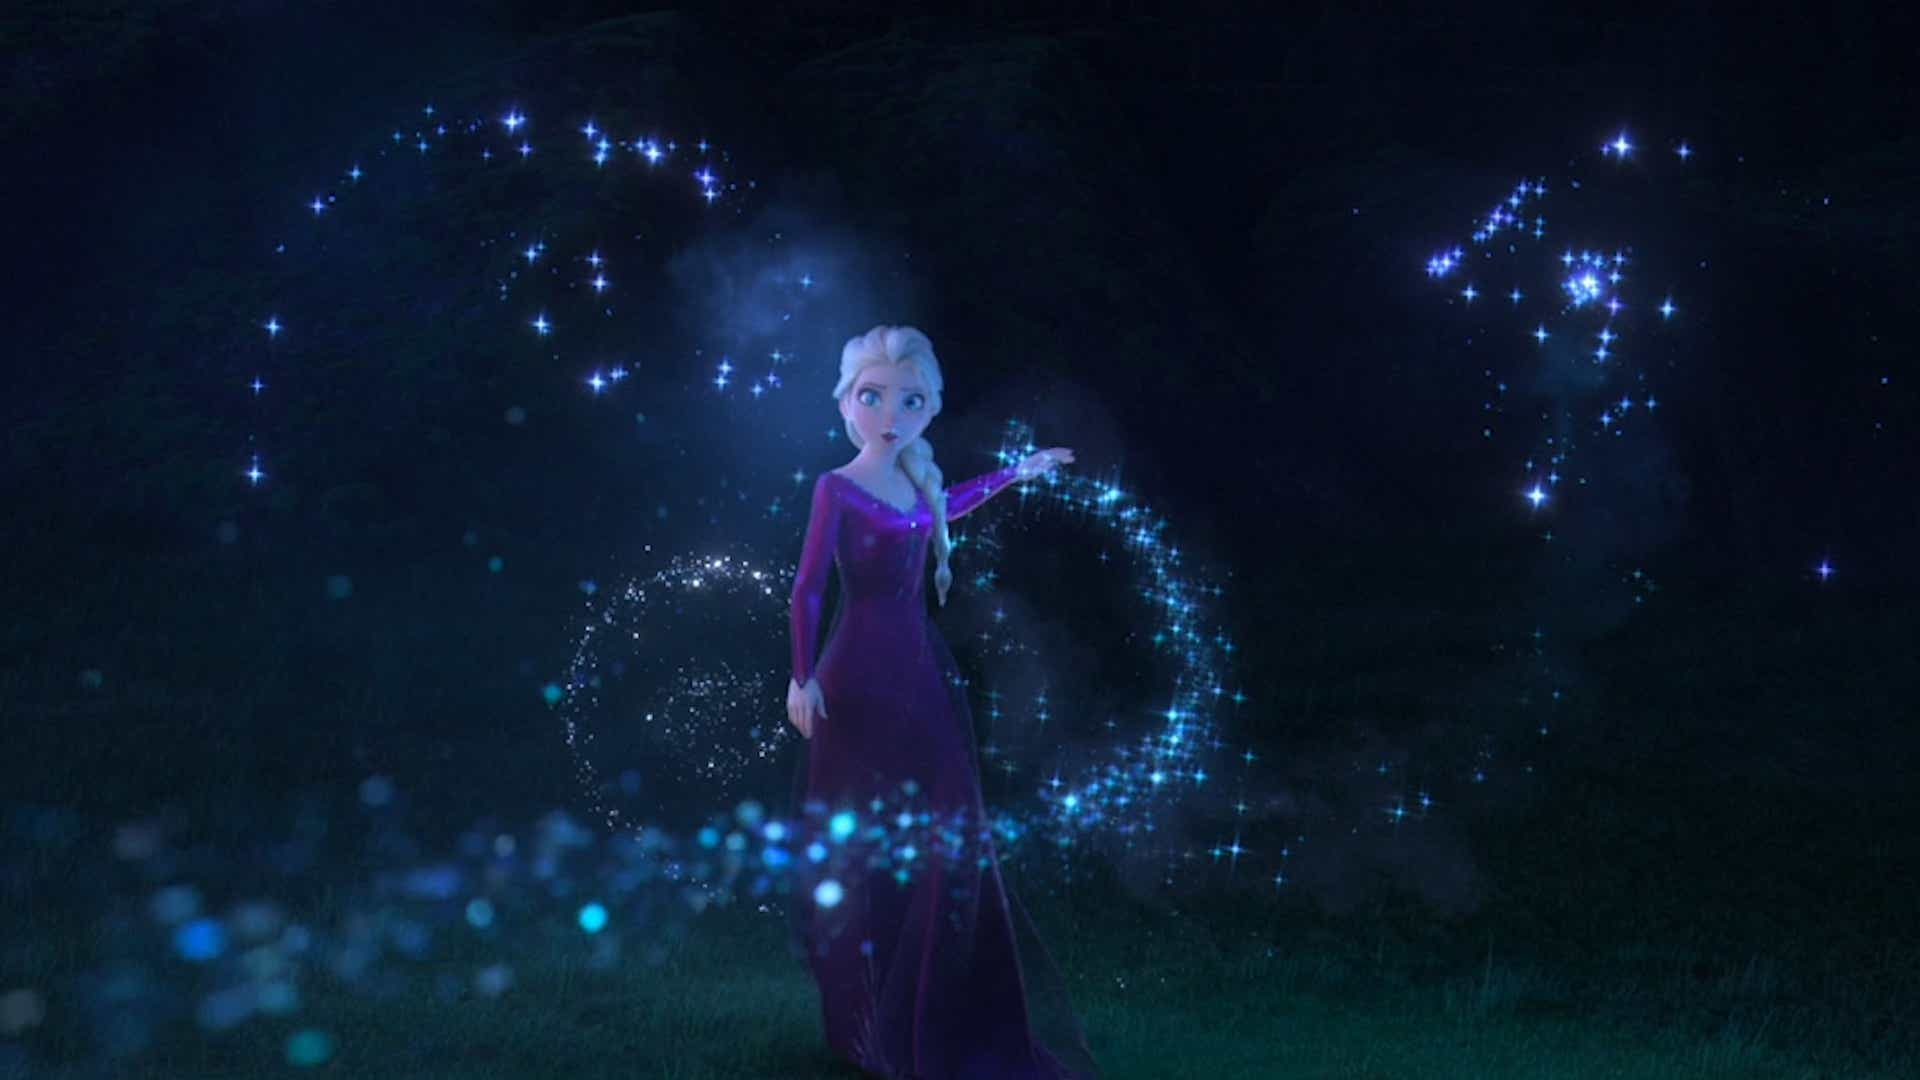 Frozen 2 Every Song In Both Movies Ranked From Worst To Best